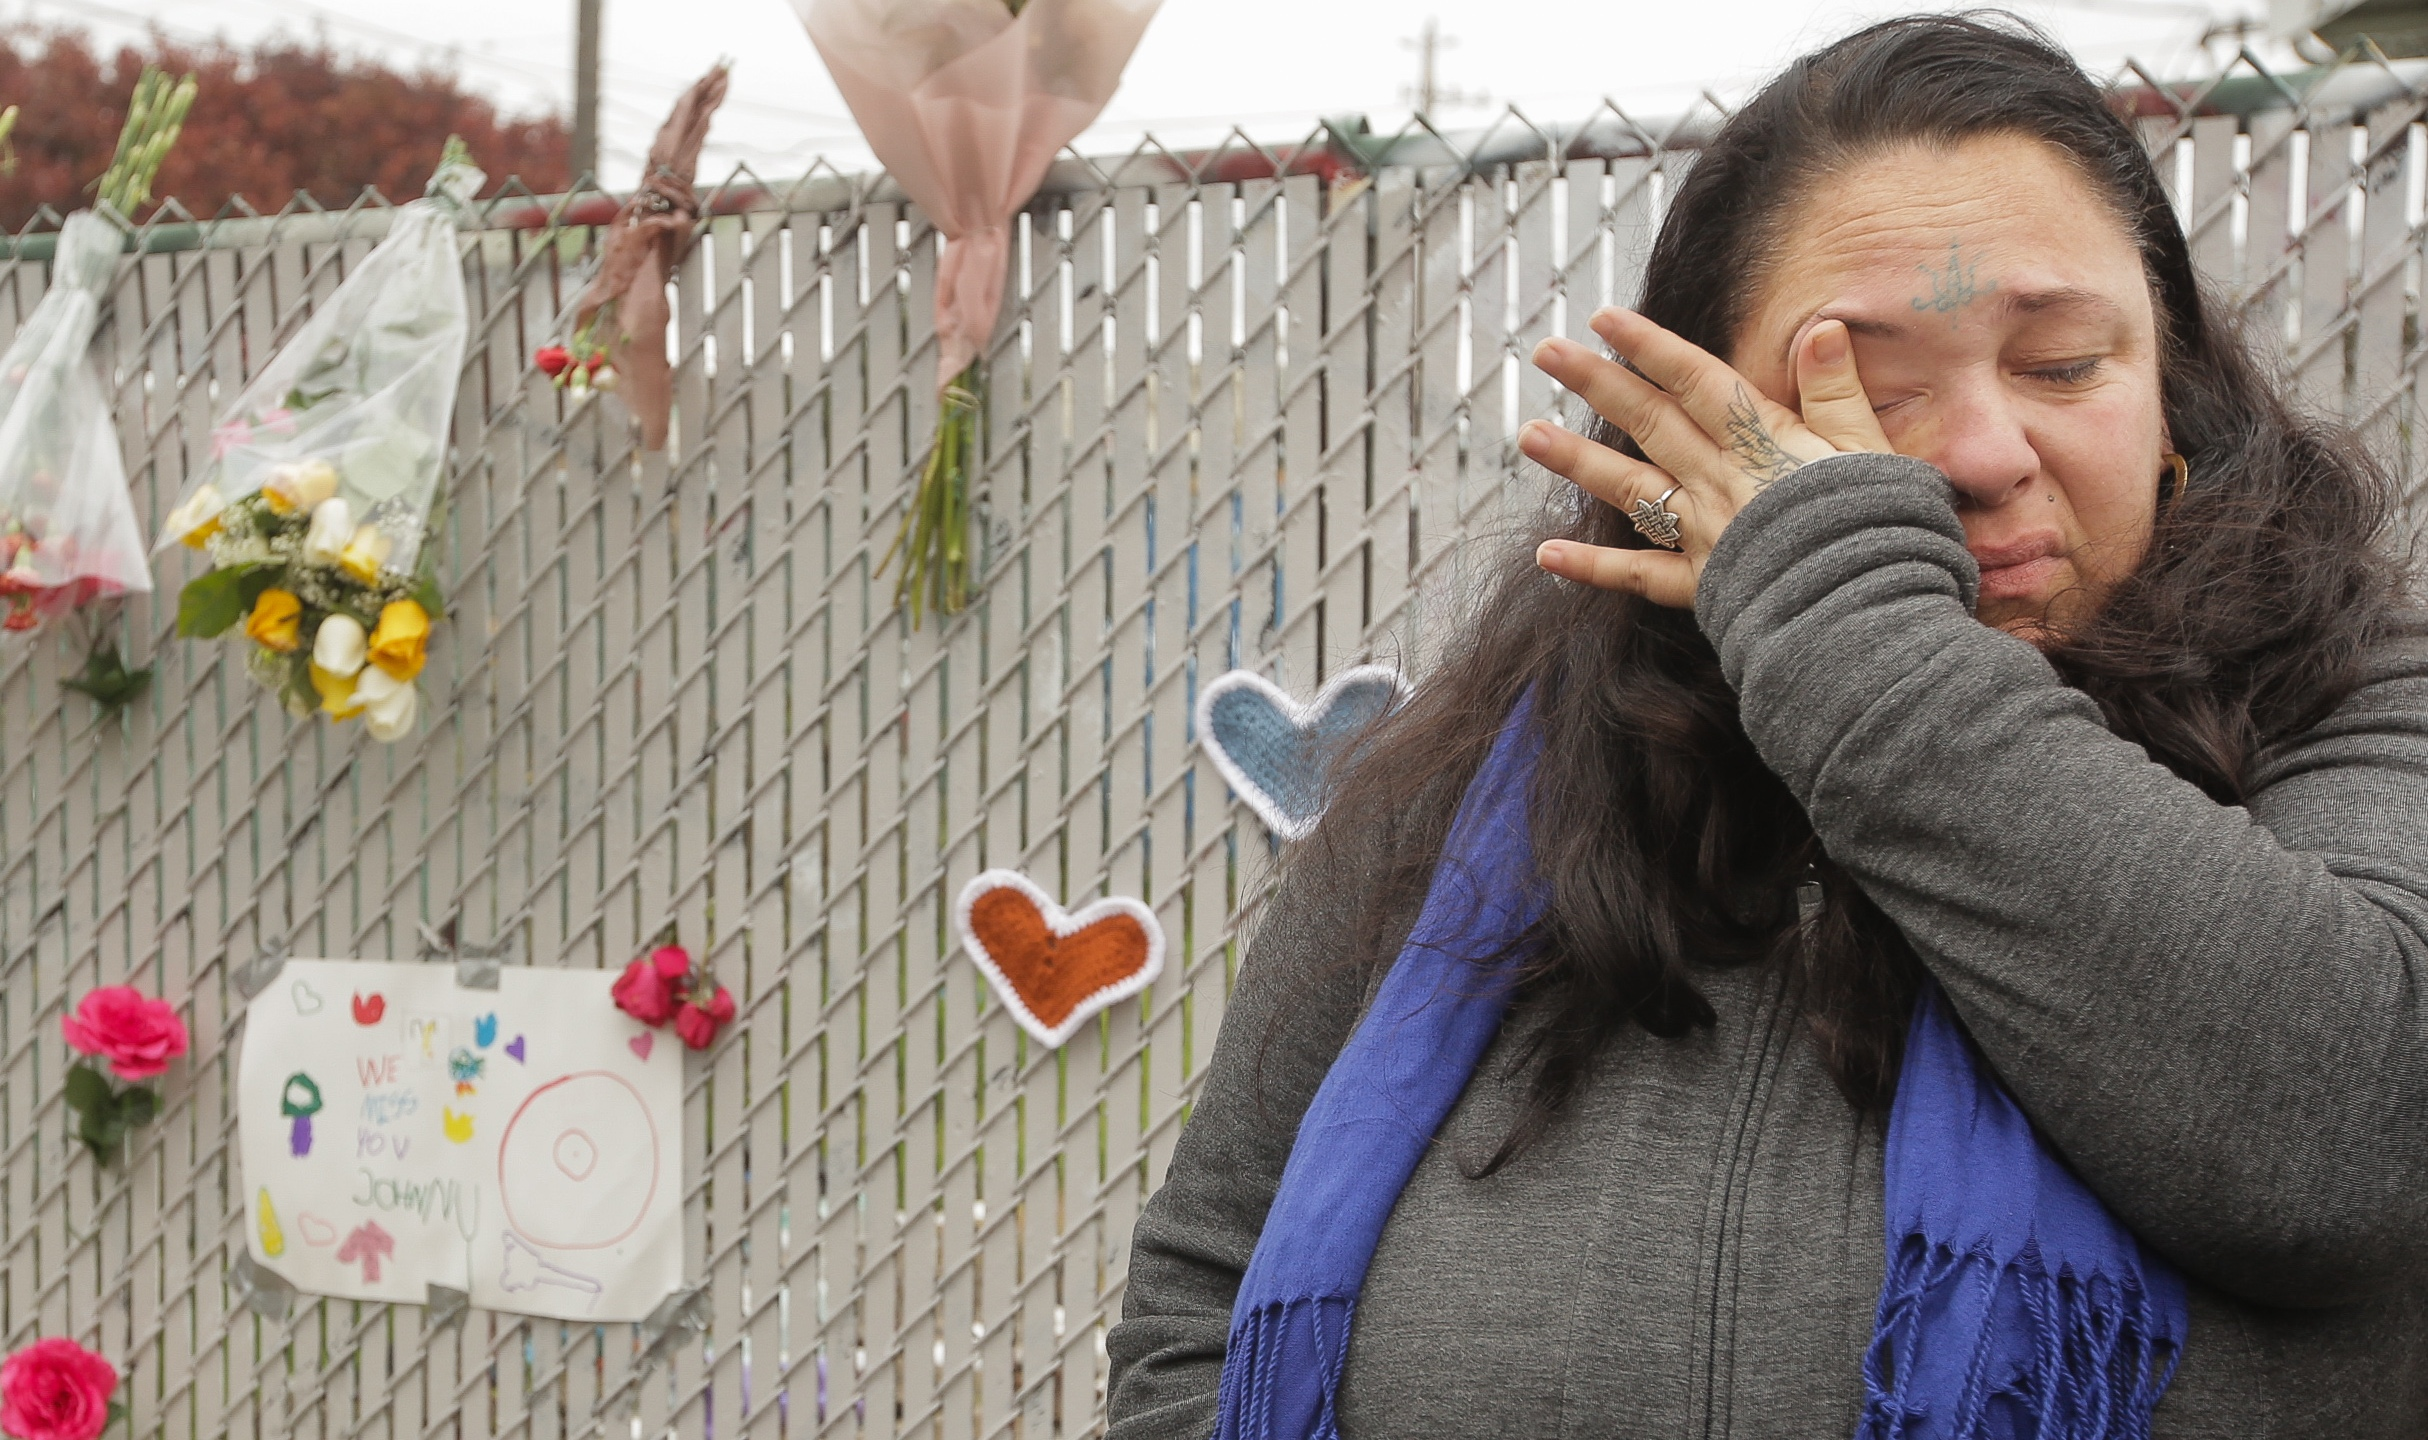 Danielle Boudreaux, who knew the man who rented out the Ghost Ship warehouse for parties and was a frequent visitor herself, cries by a makeshift memorial near the site of a warehouse fire that has claimed the lives of at least 36 people on Dec. 5, 2016, in Oakland. (Credit: Elijah Nouvelage/Getty Images)